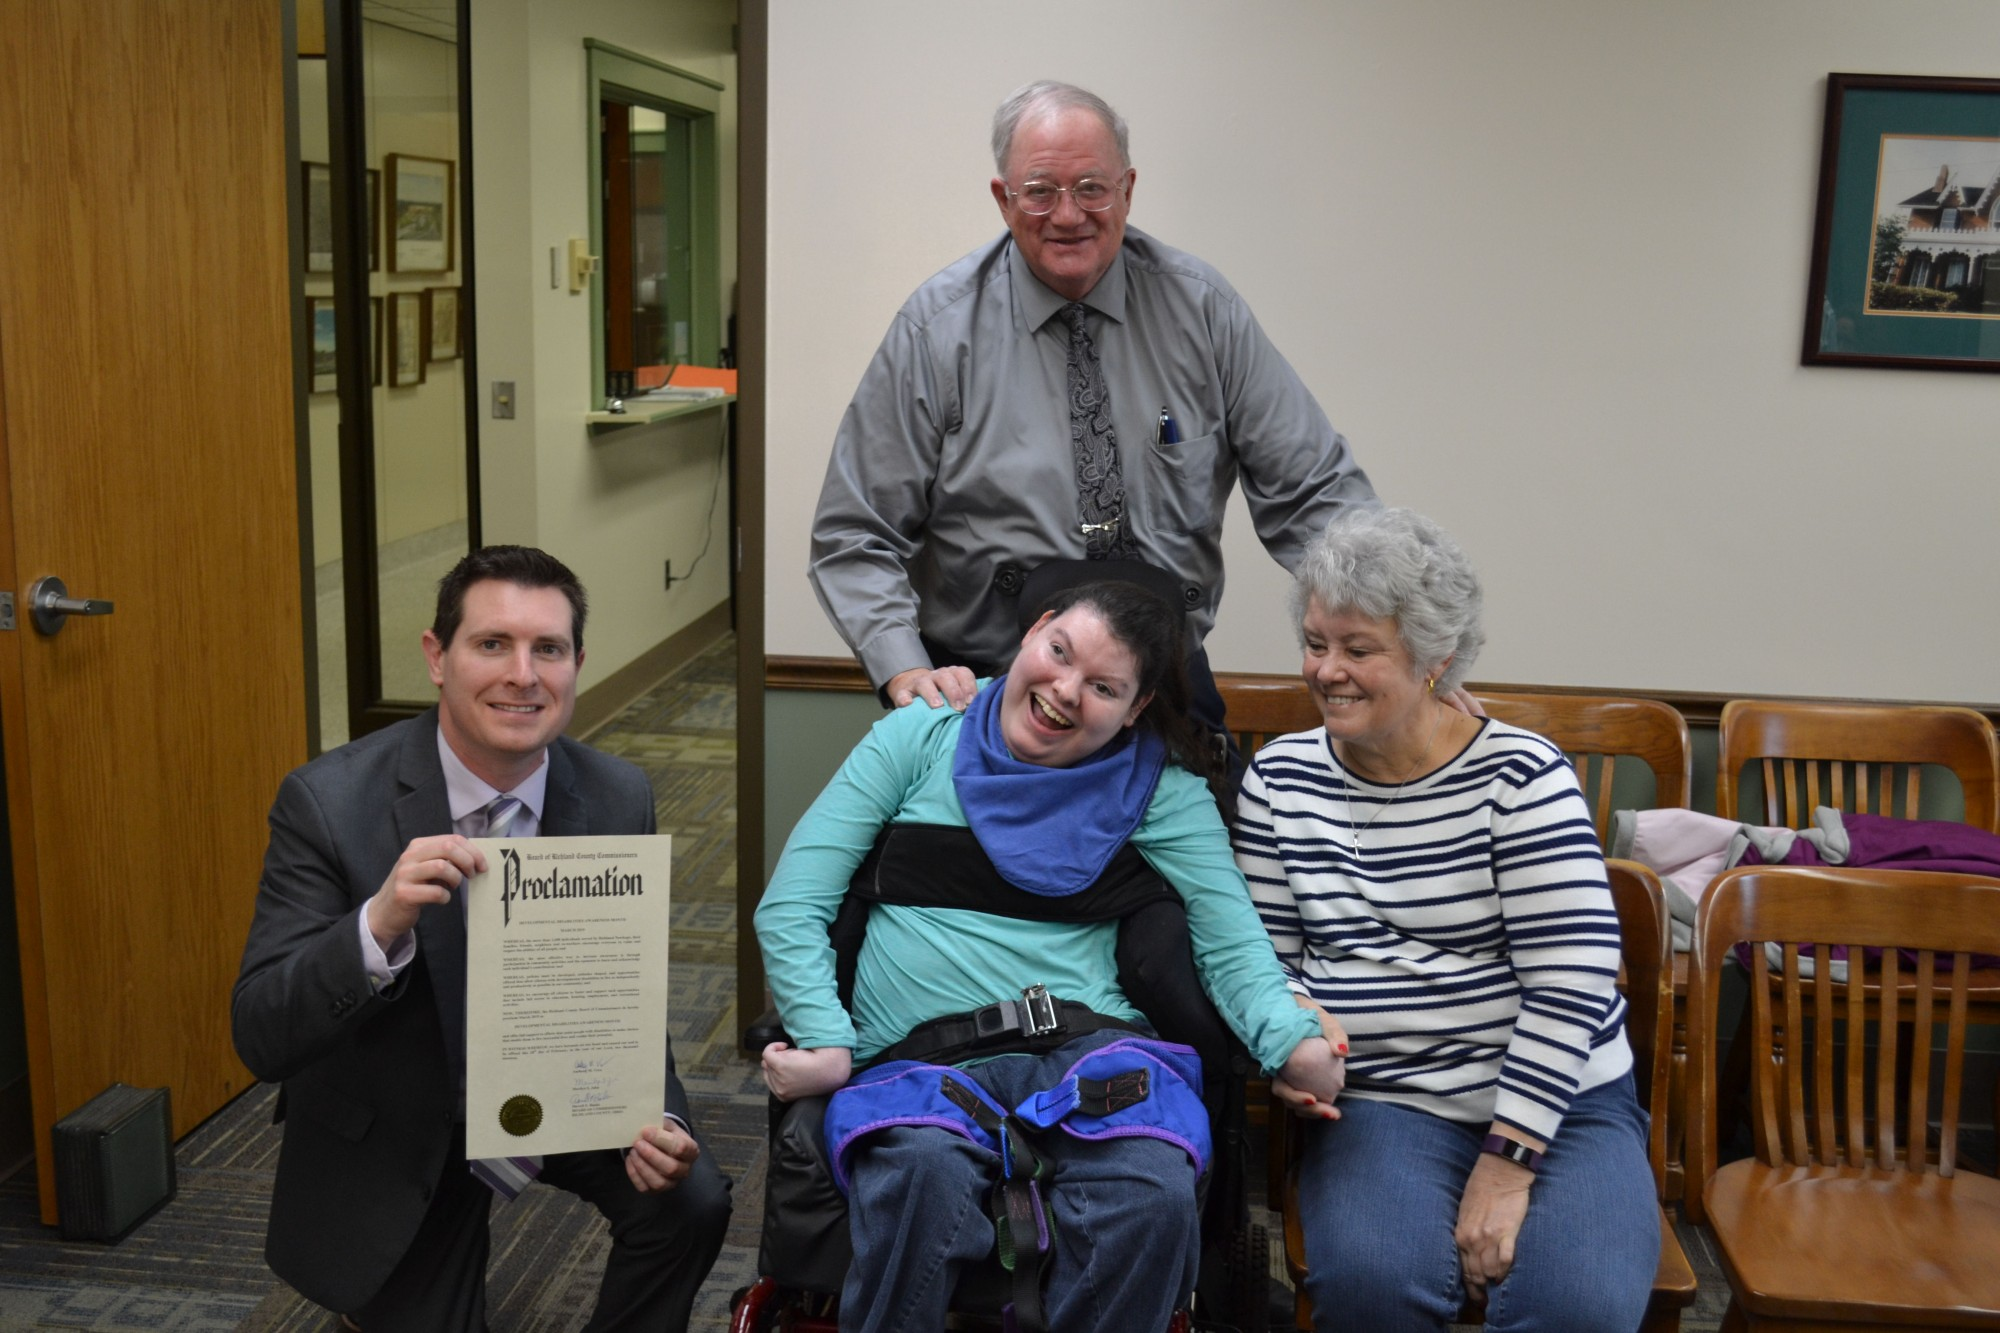 Richland Newhope celebrates Developmental Disabilities Awareness Month